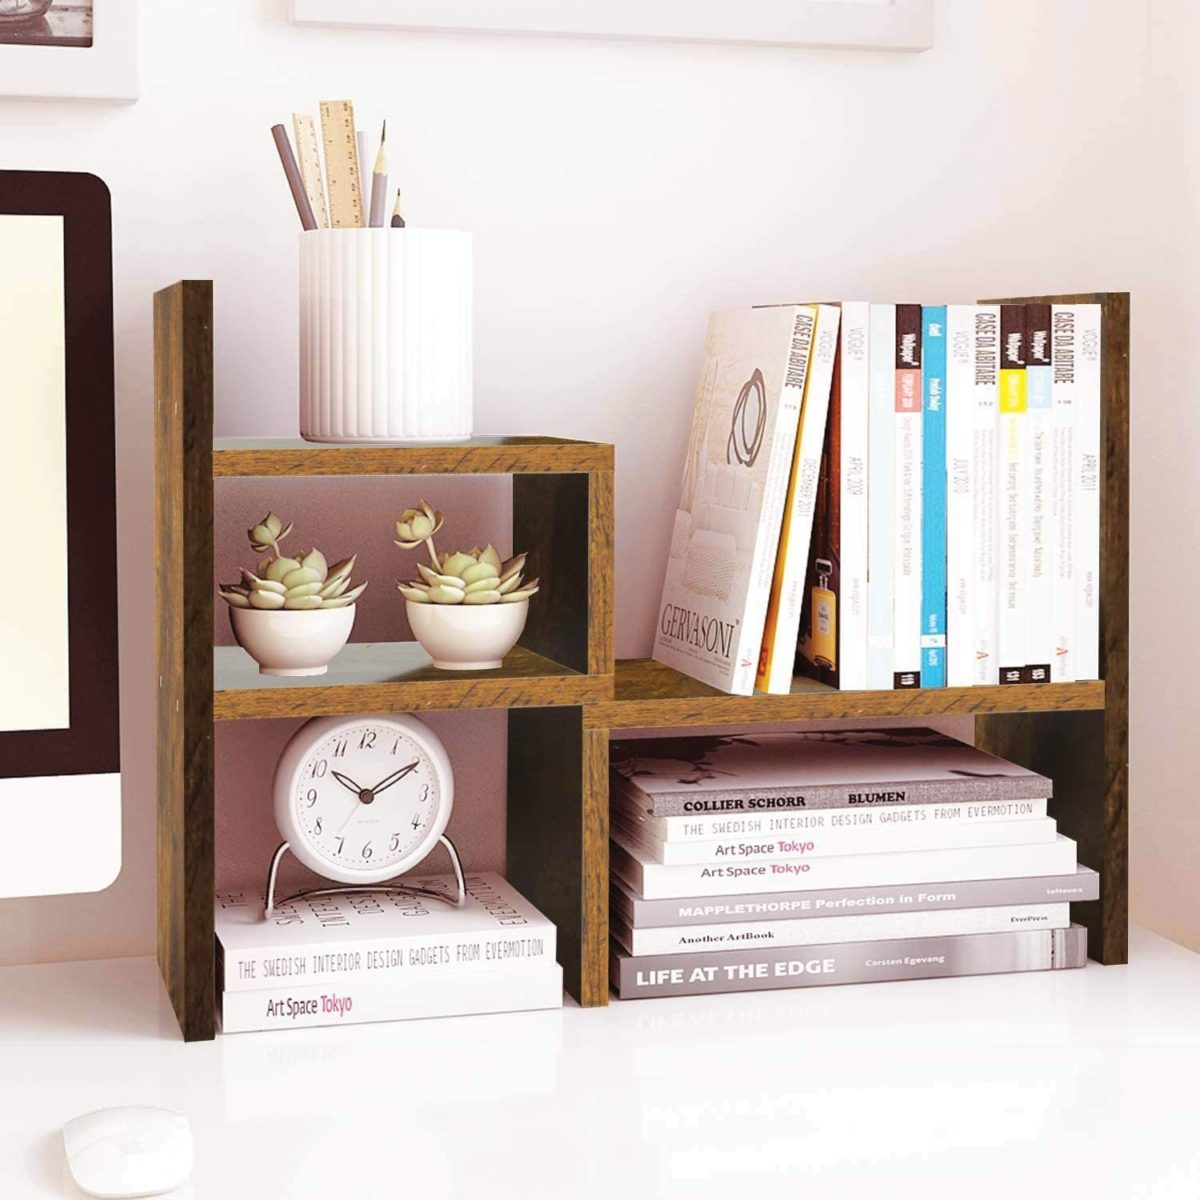 24 cheap home decor option that will brighten up any room in any home